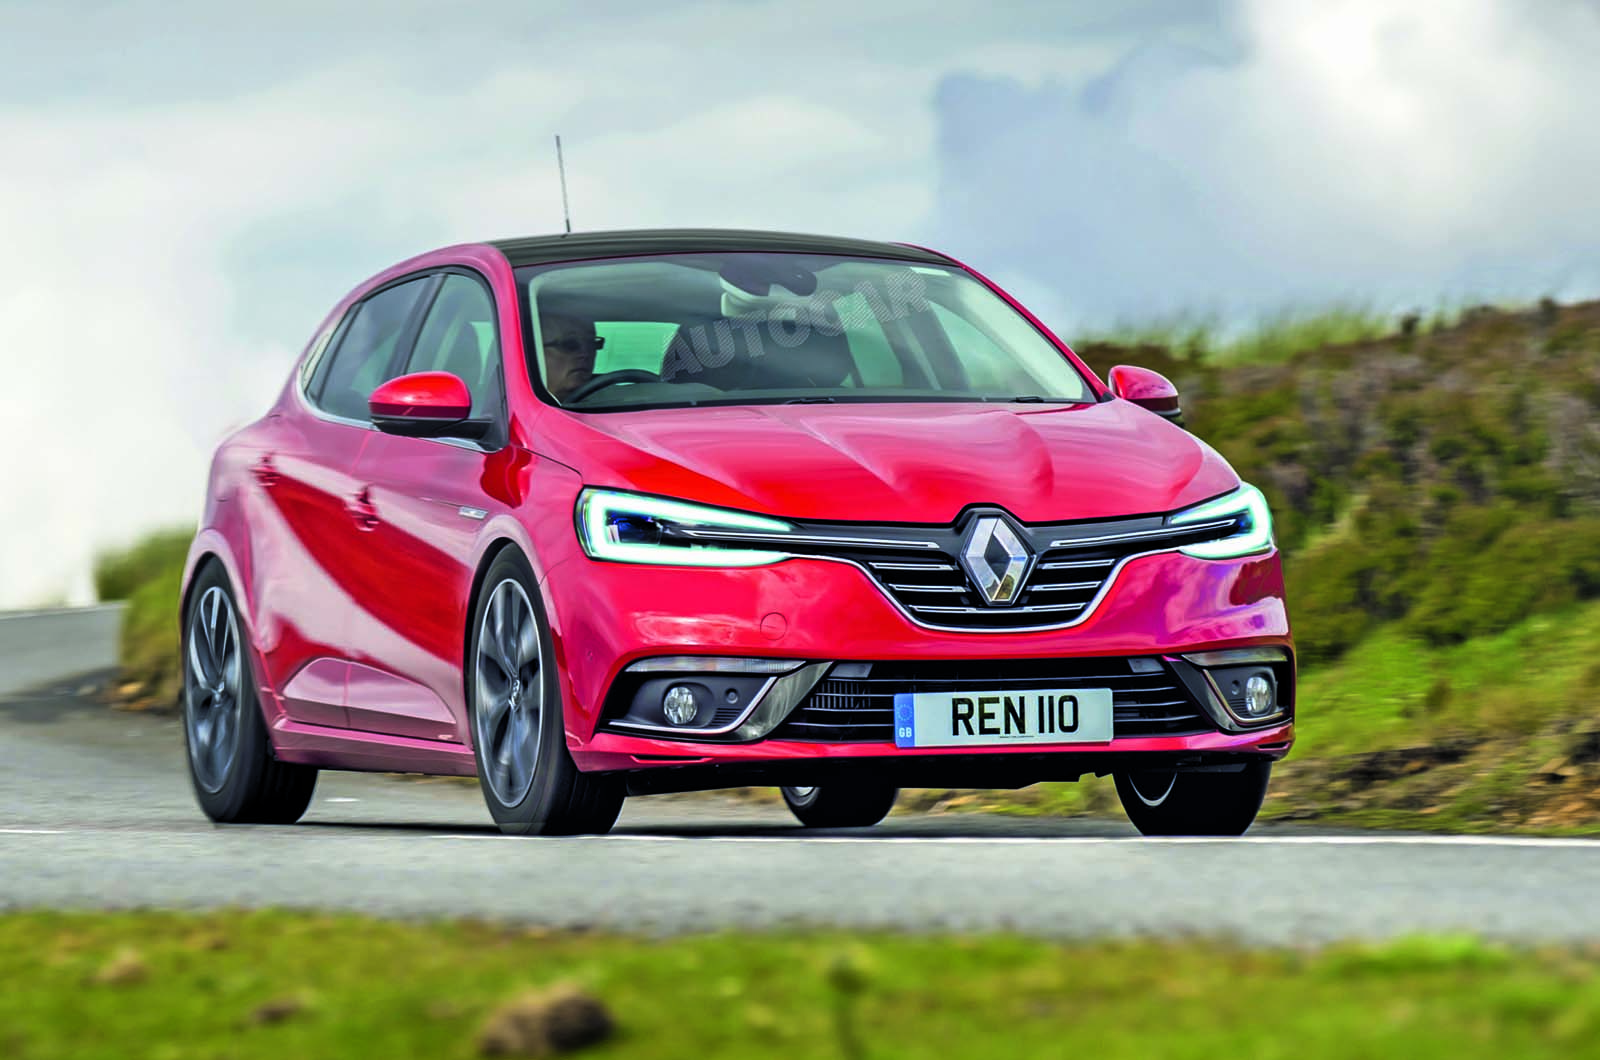 55 New Nouvelles Renault 2020 Price